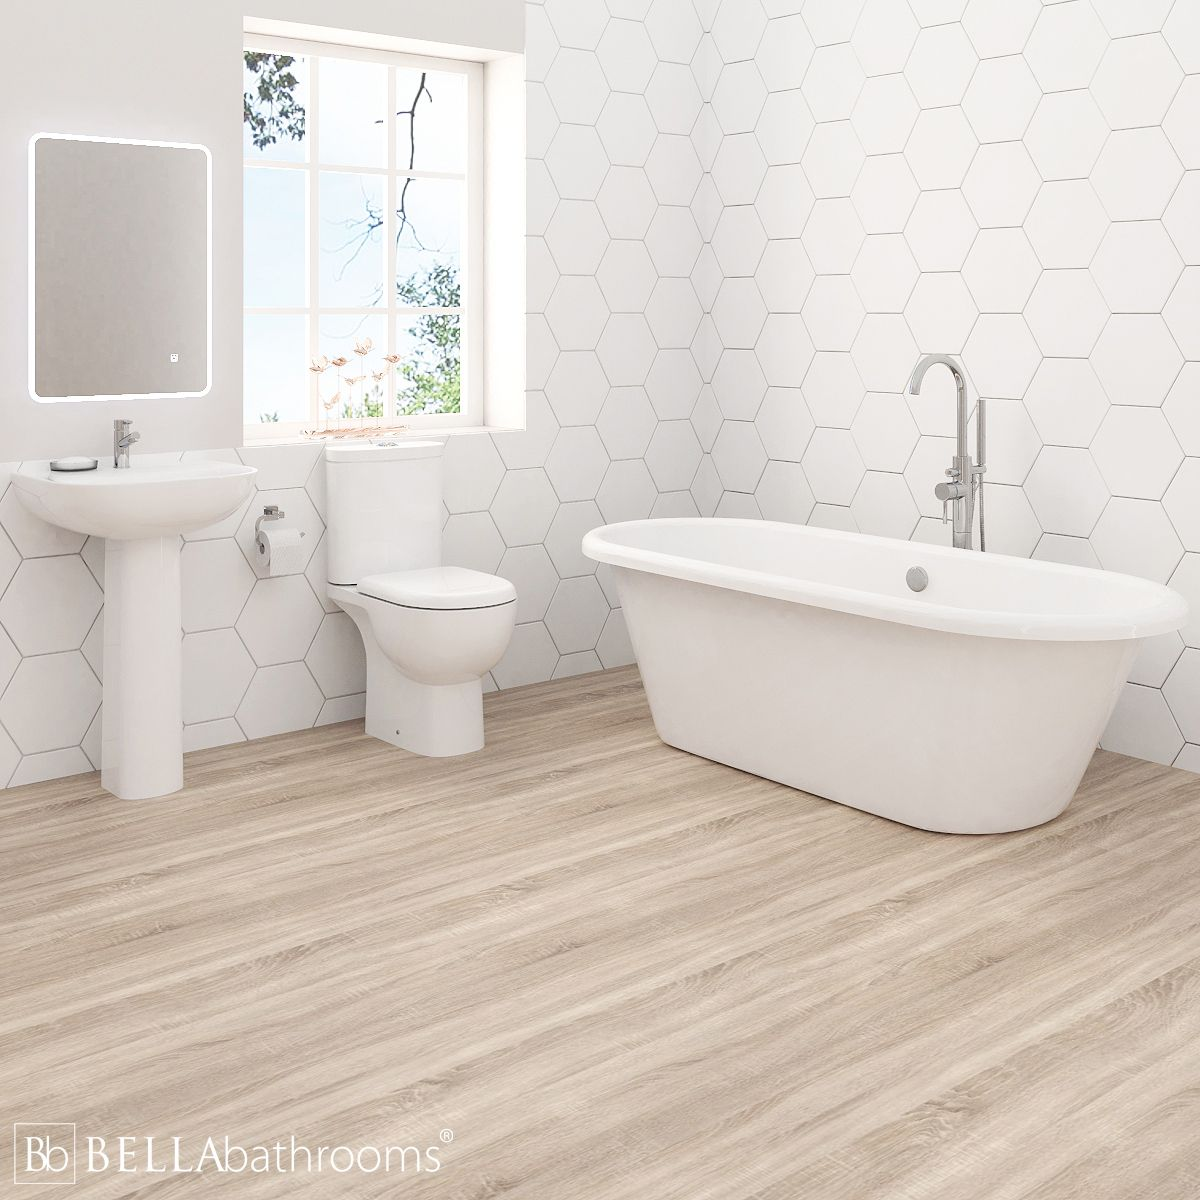 RAK Tonique Bathroom Suite with Haworth Freestanding Bath